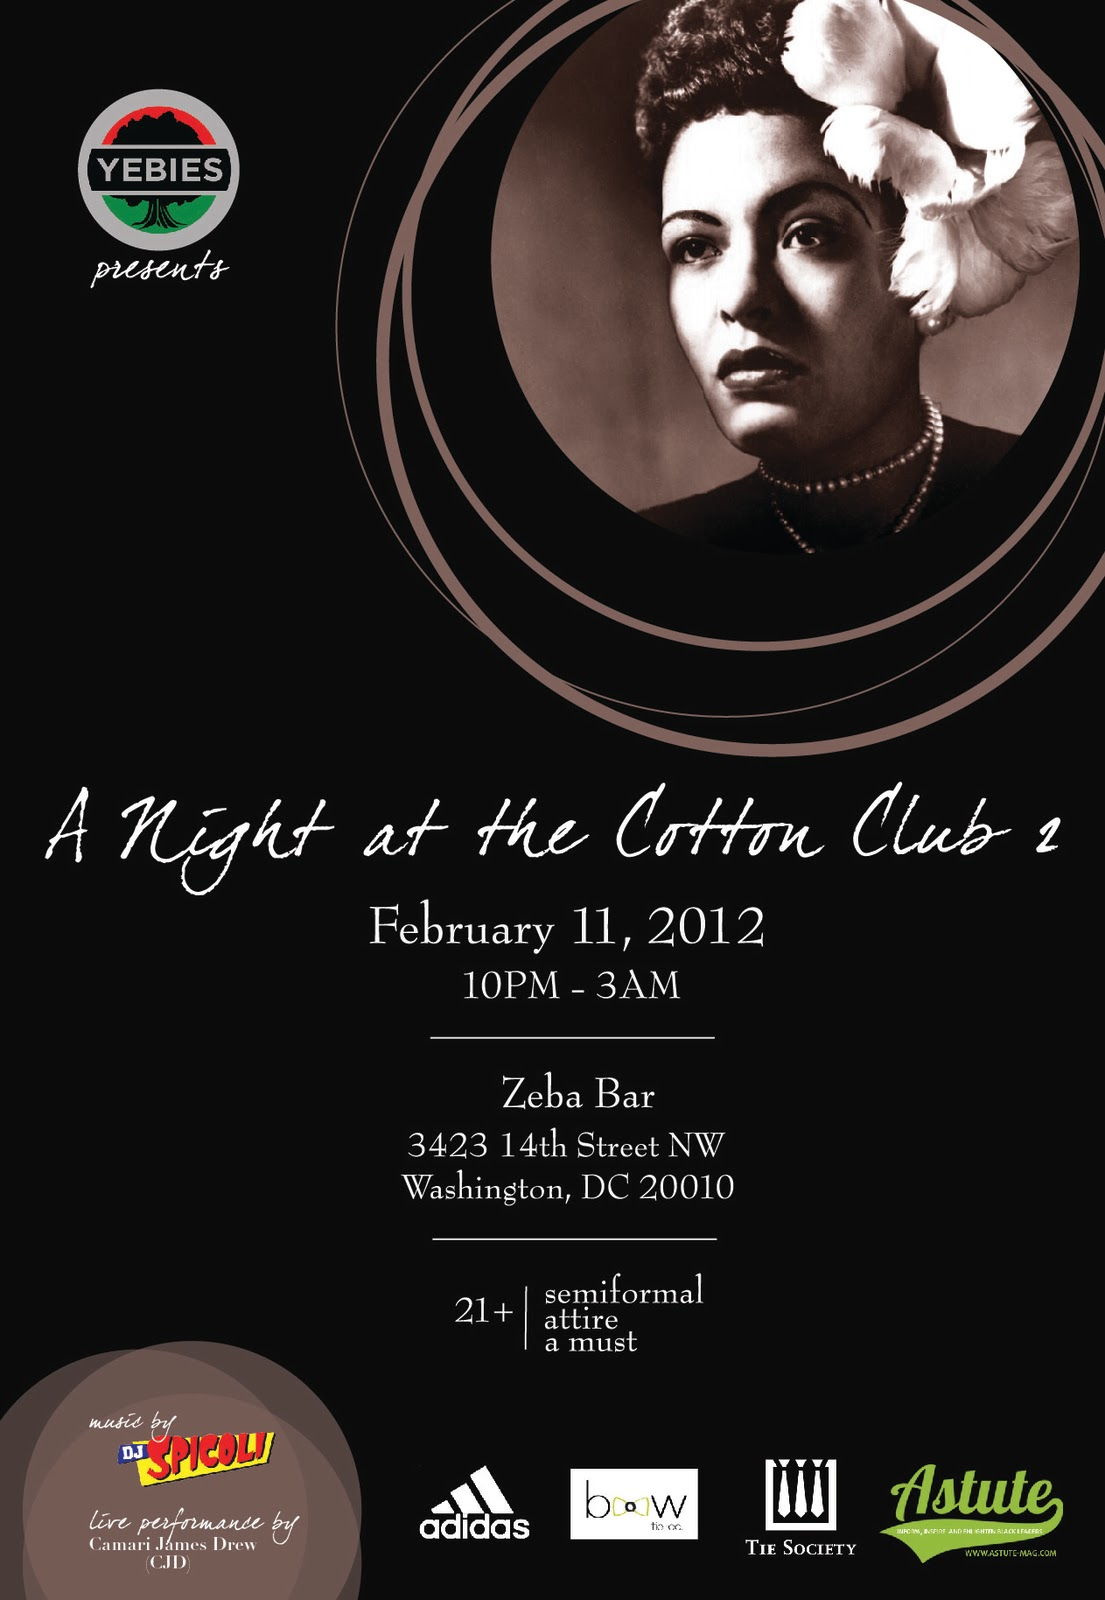 YEBies Presents: A Night At The Cotton Club 2